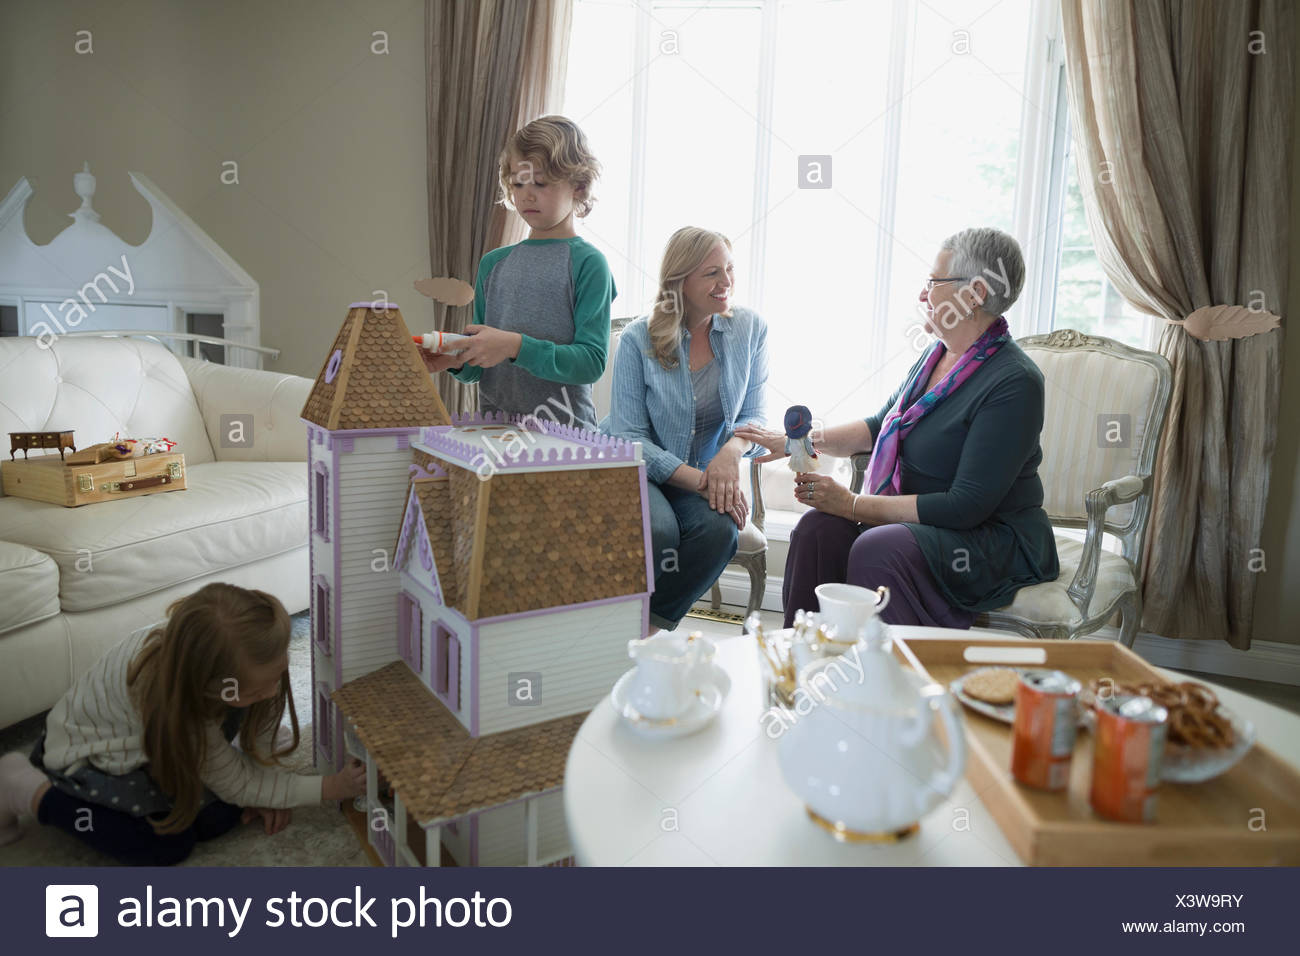 Children playing with dollhouse while mother and grandmother talk - Stock Image